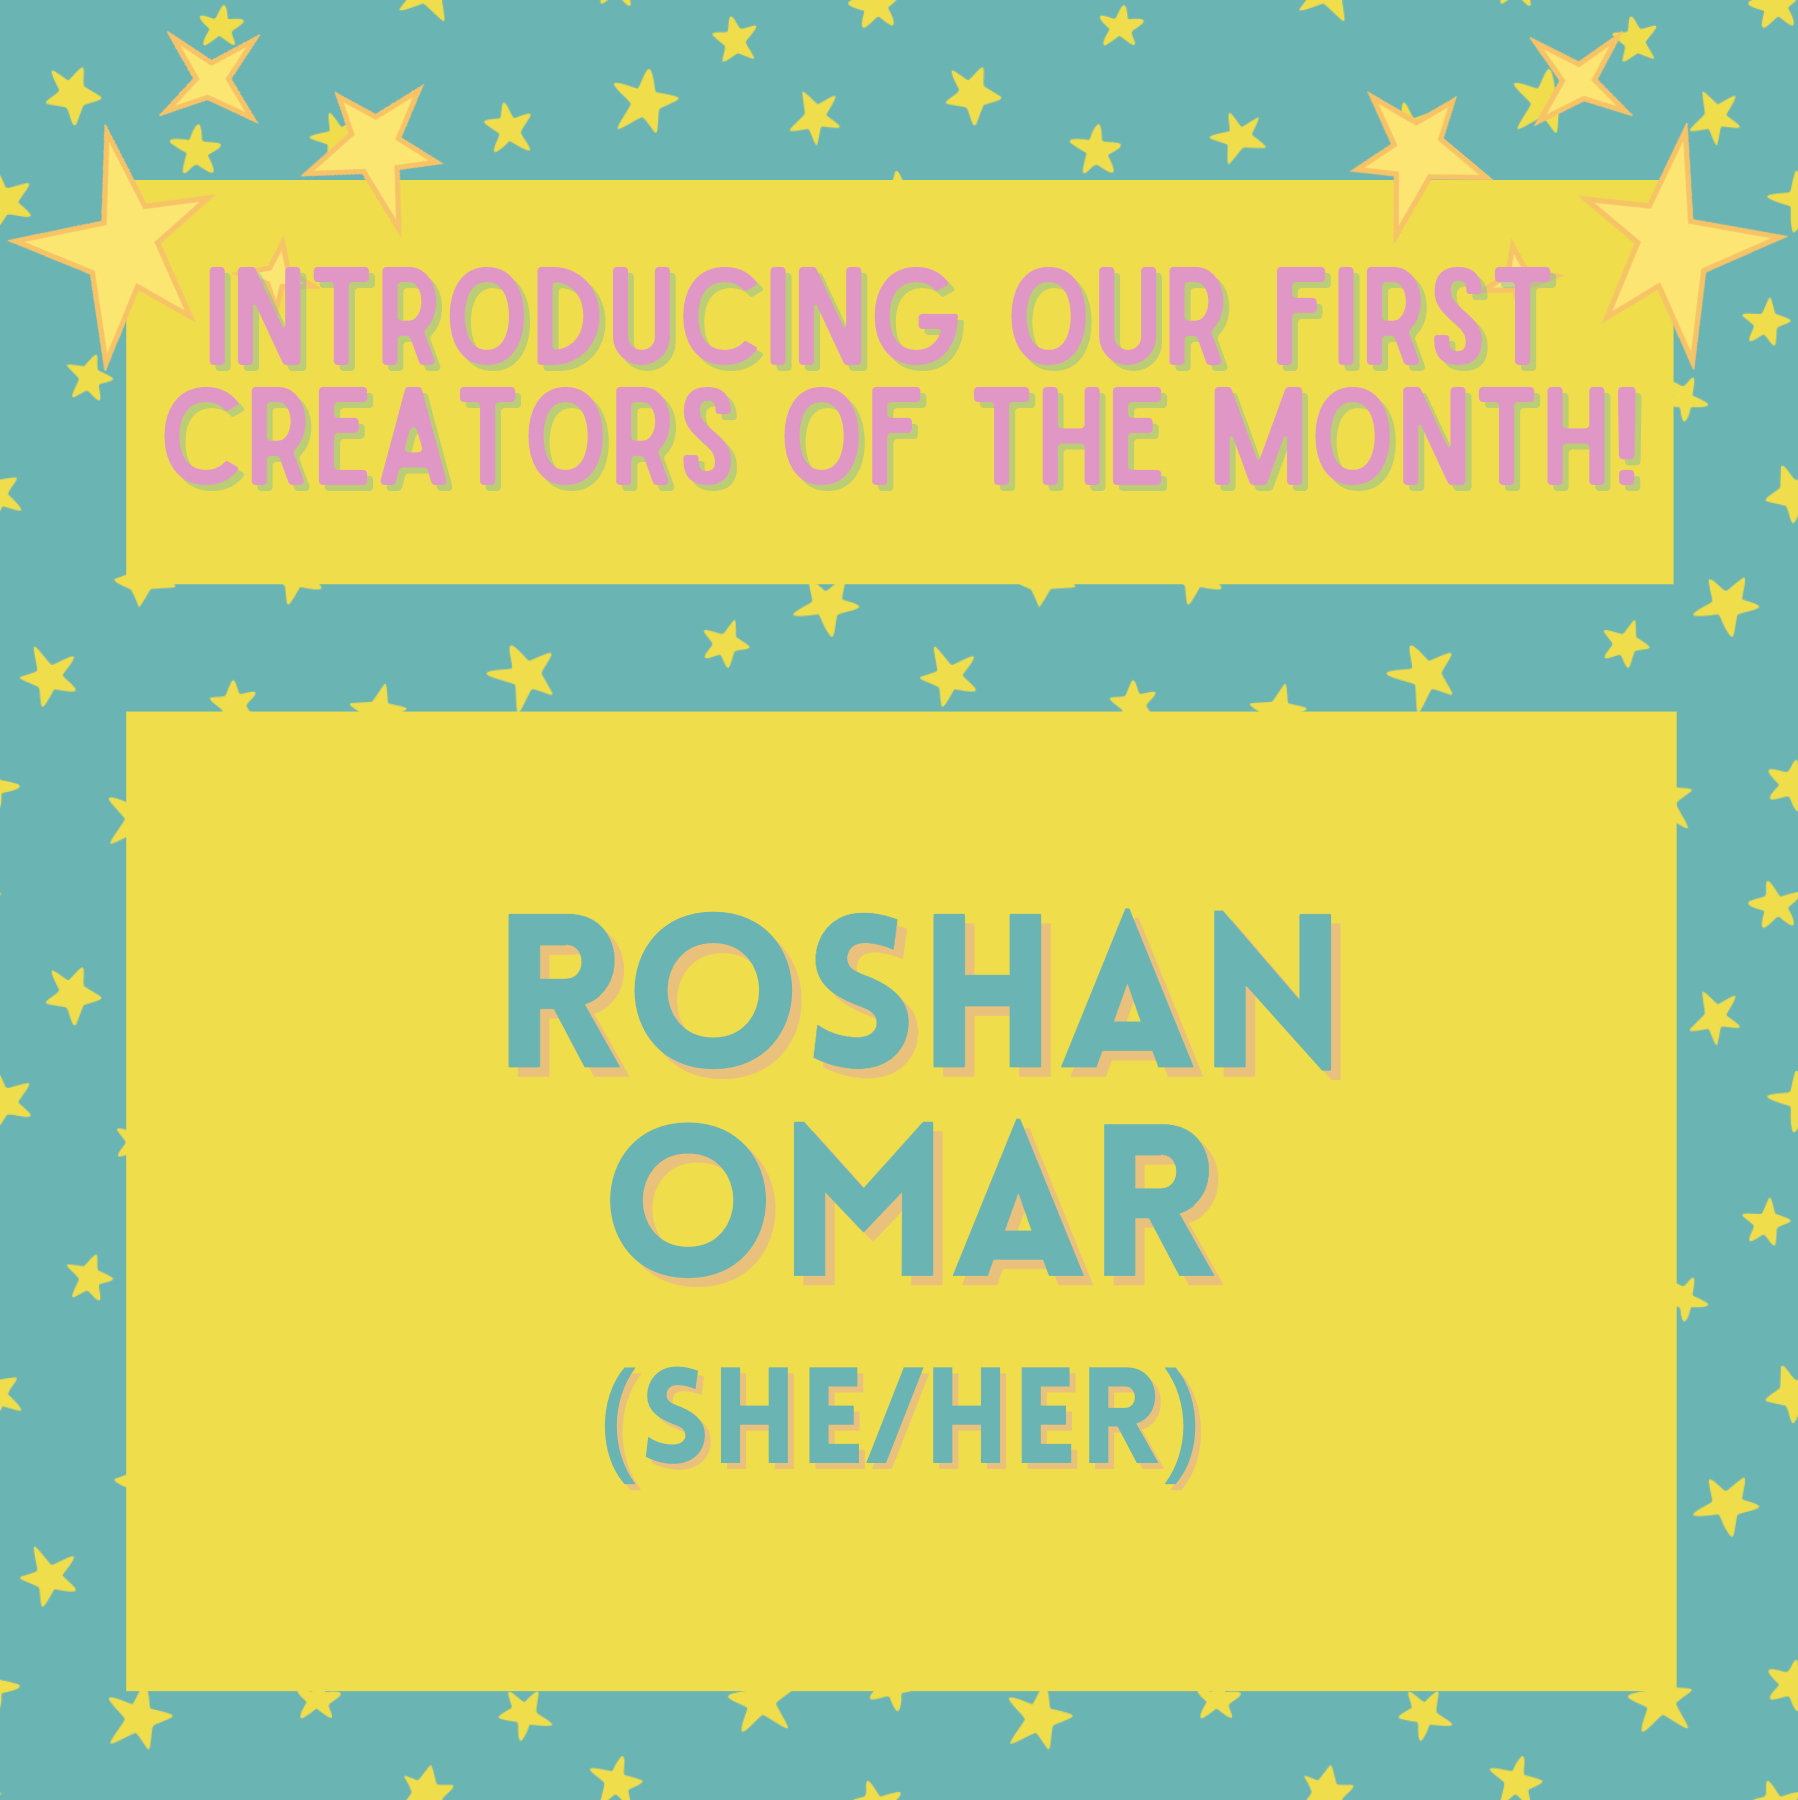 PEACH x QM Arts Society present: Creator of the Month – Roshan Omar